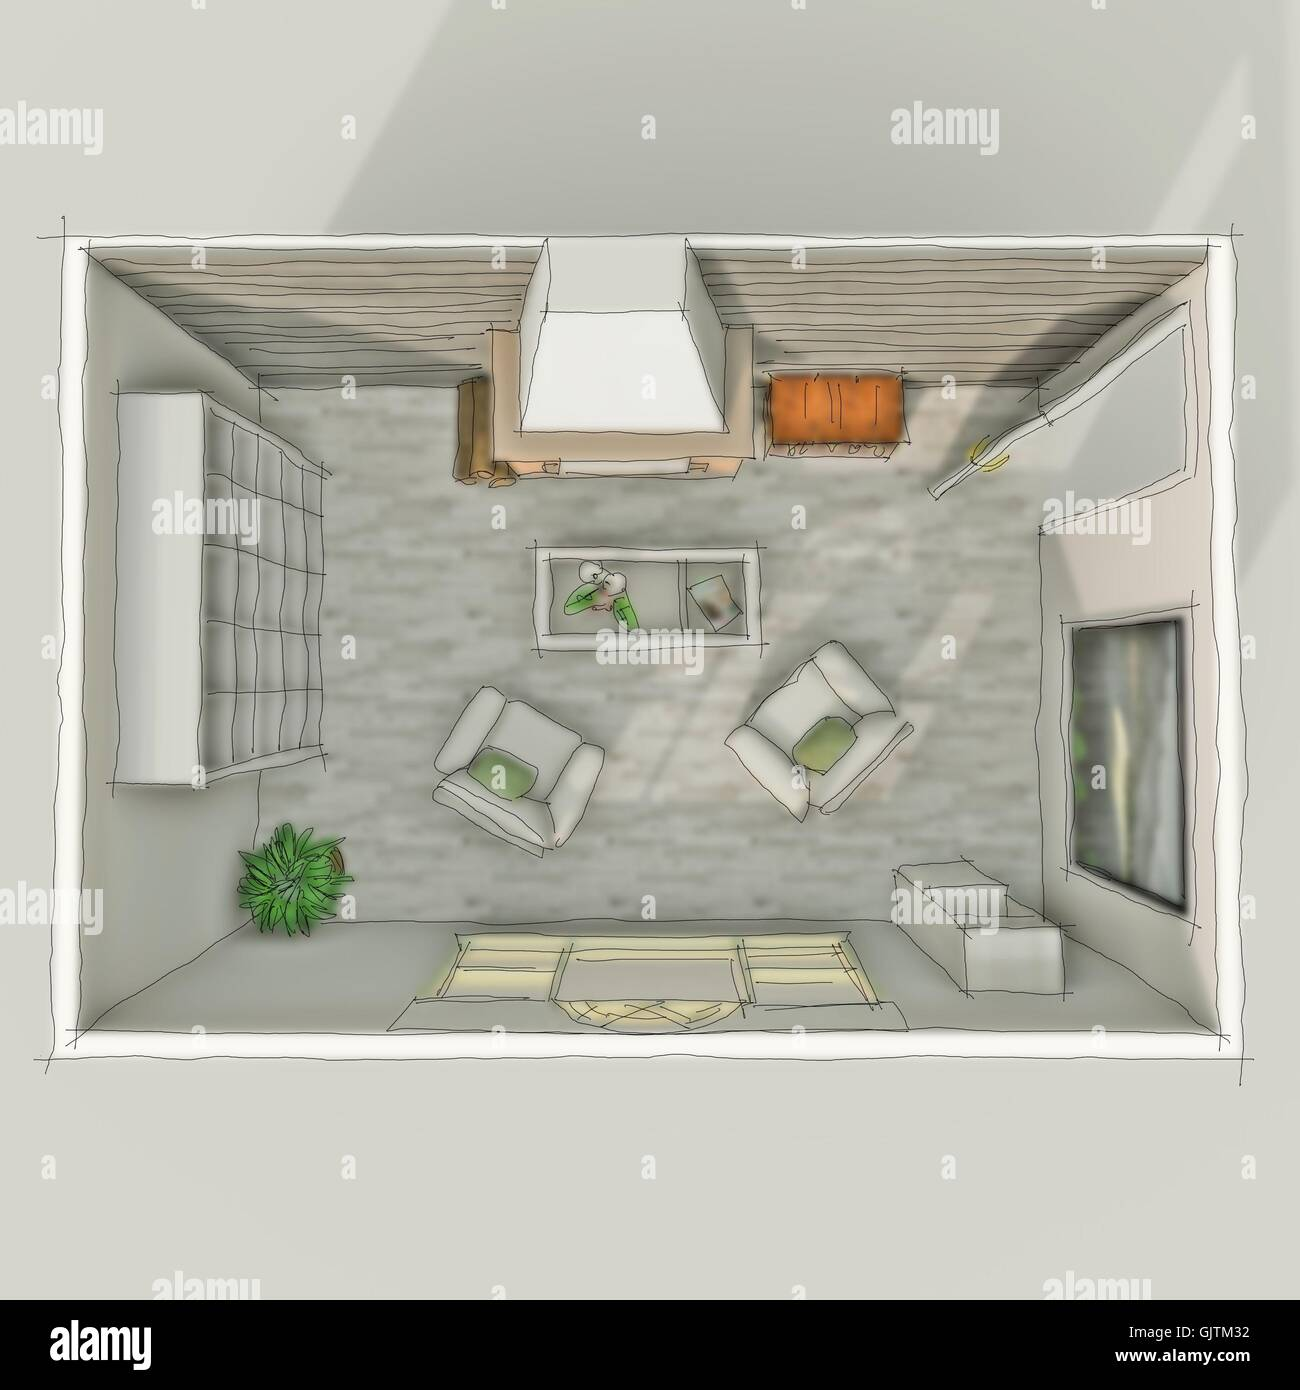 3d freehand sketch drawing of interior roofless living for 3d bedroom drawing